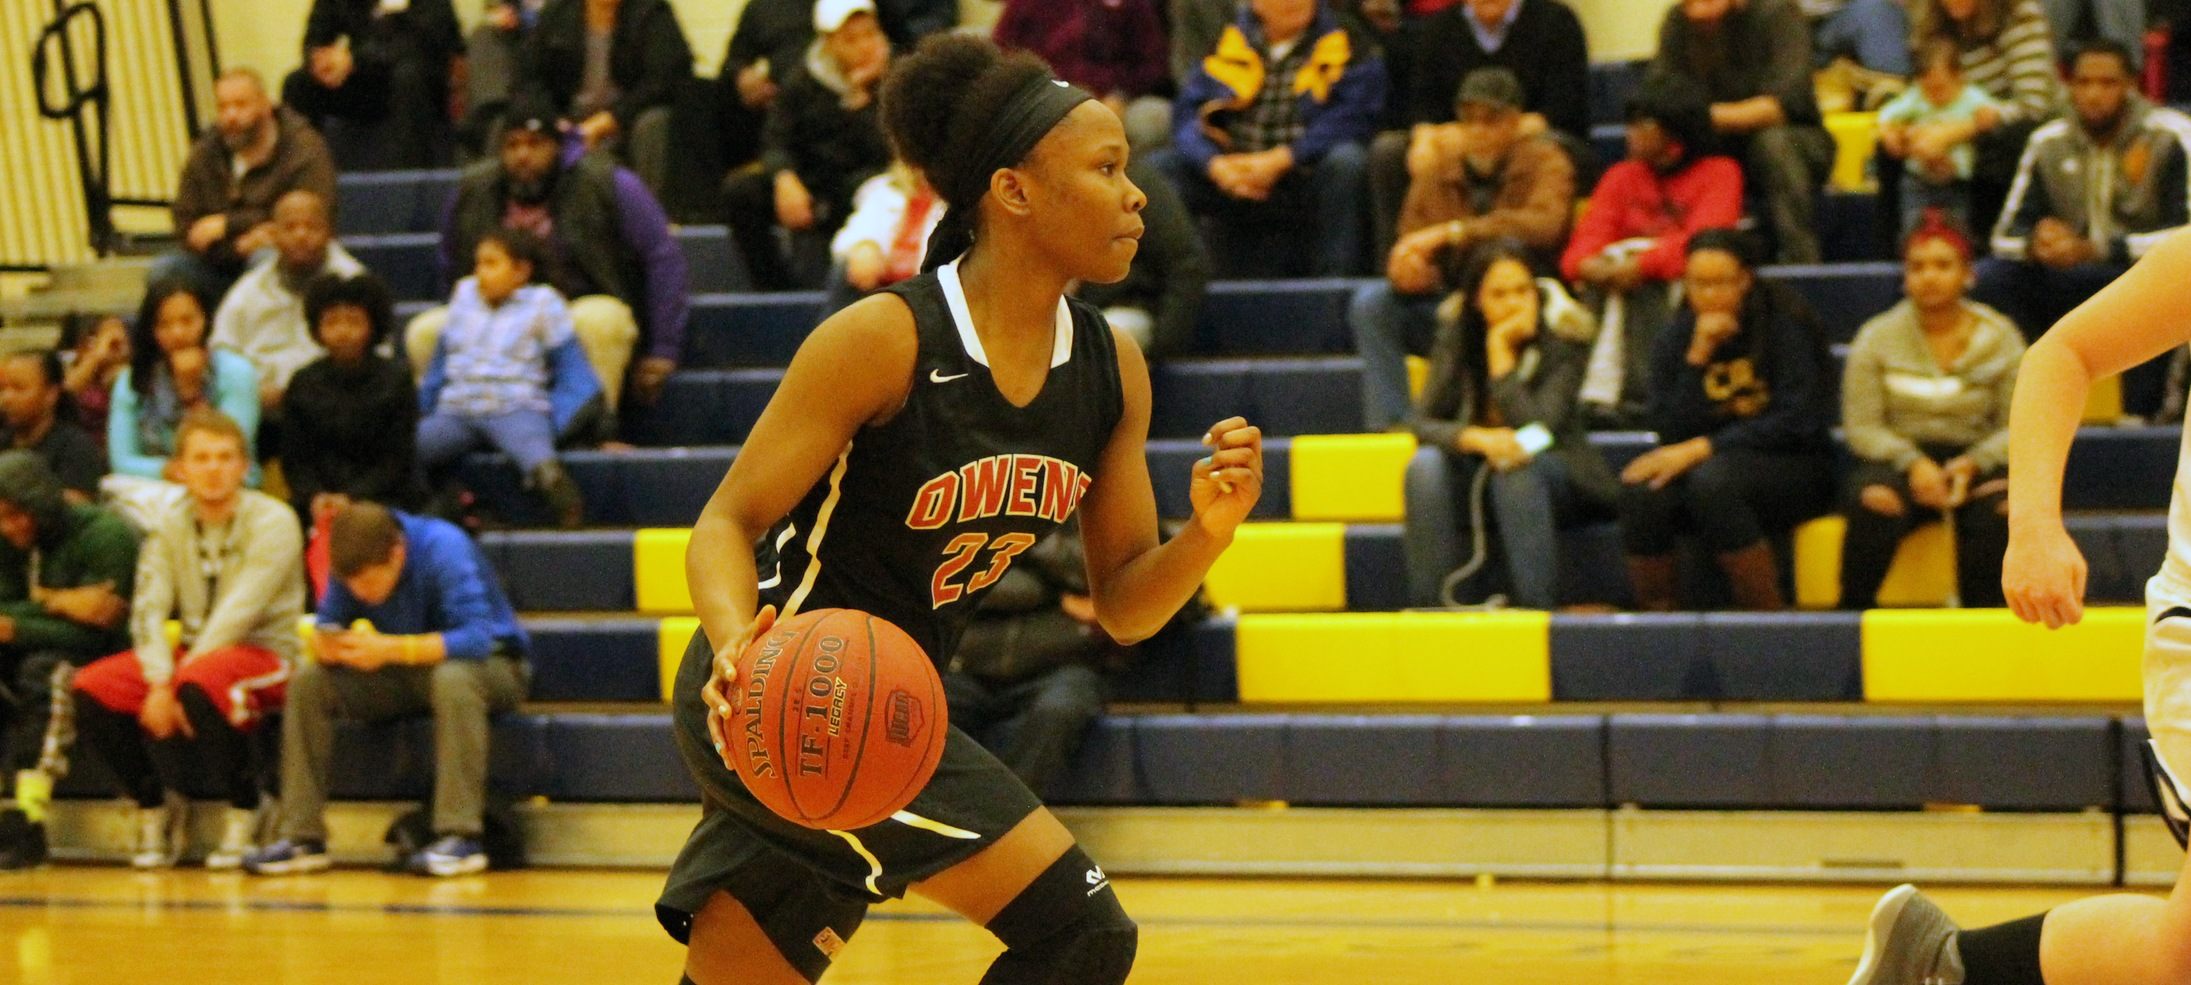 Denissa Sly brings the ball up the court against Lorain County. Photo by Nicholas Huenefeld/Owens Sports Information